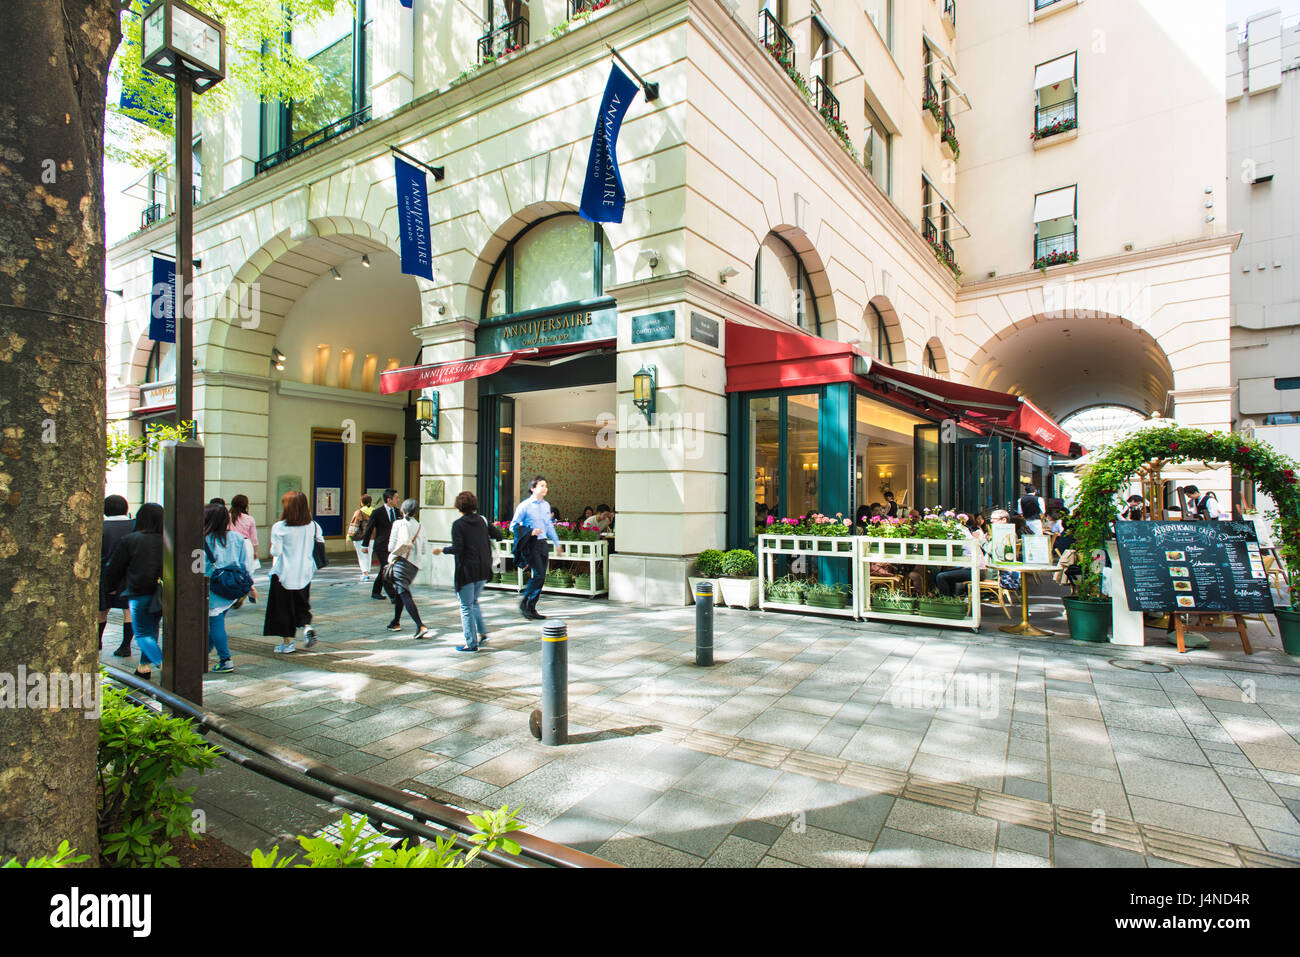 Omotesando shopping street showing the Anniversaire Building and cafe in Tokyo, Japan - Stock Image